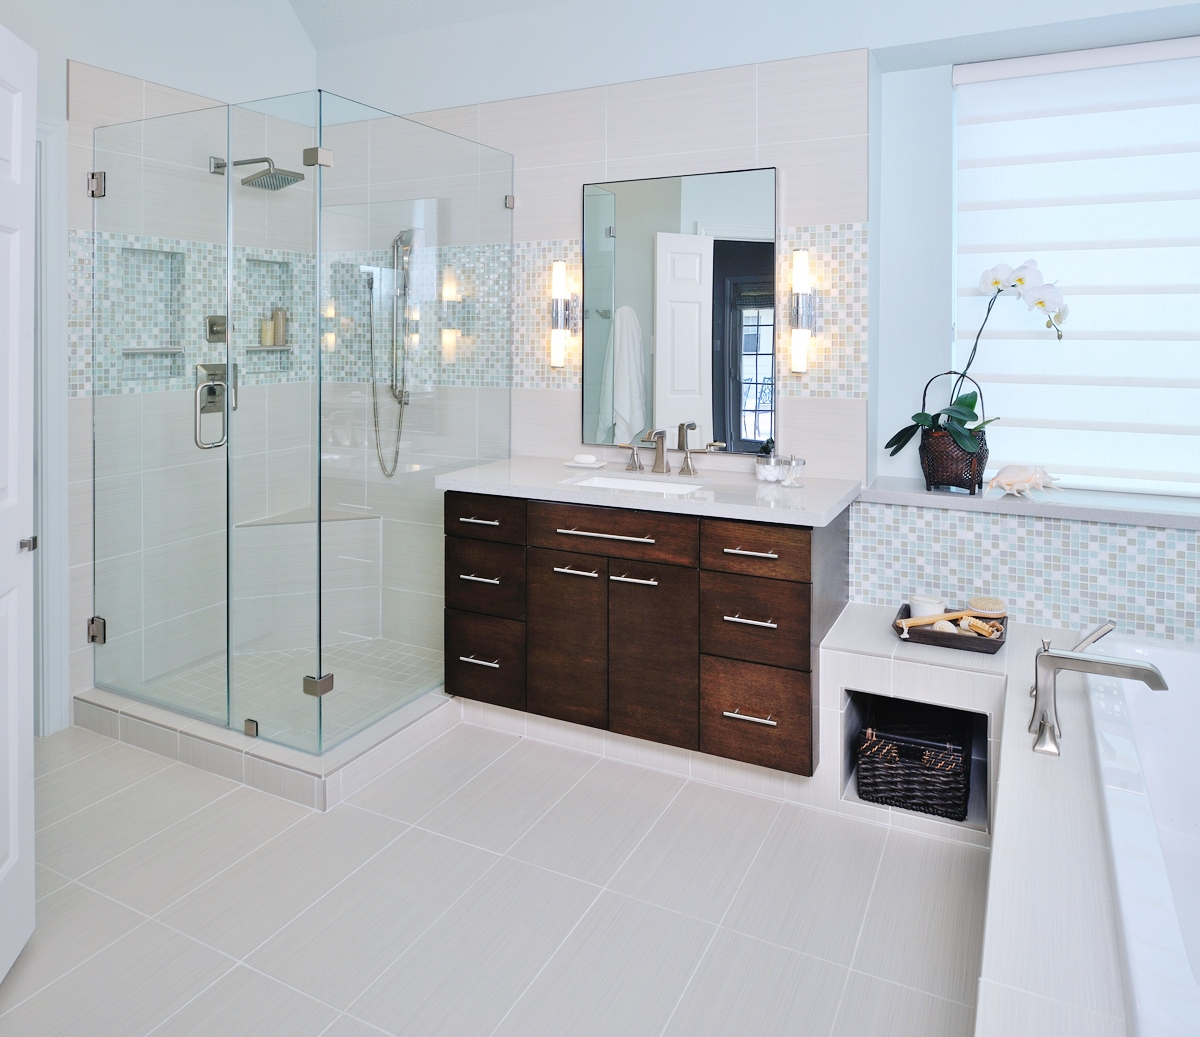 Big Tiles In Small Bathroom.11 Simple Ways To Make A Small Bathroom Look Bigger Designed